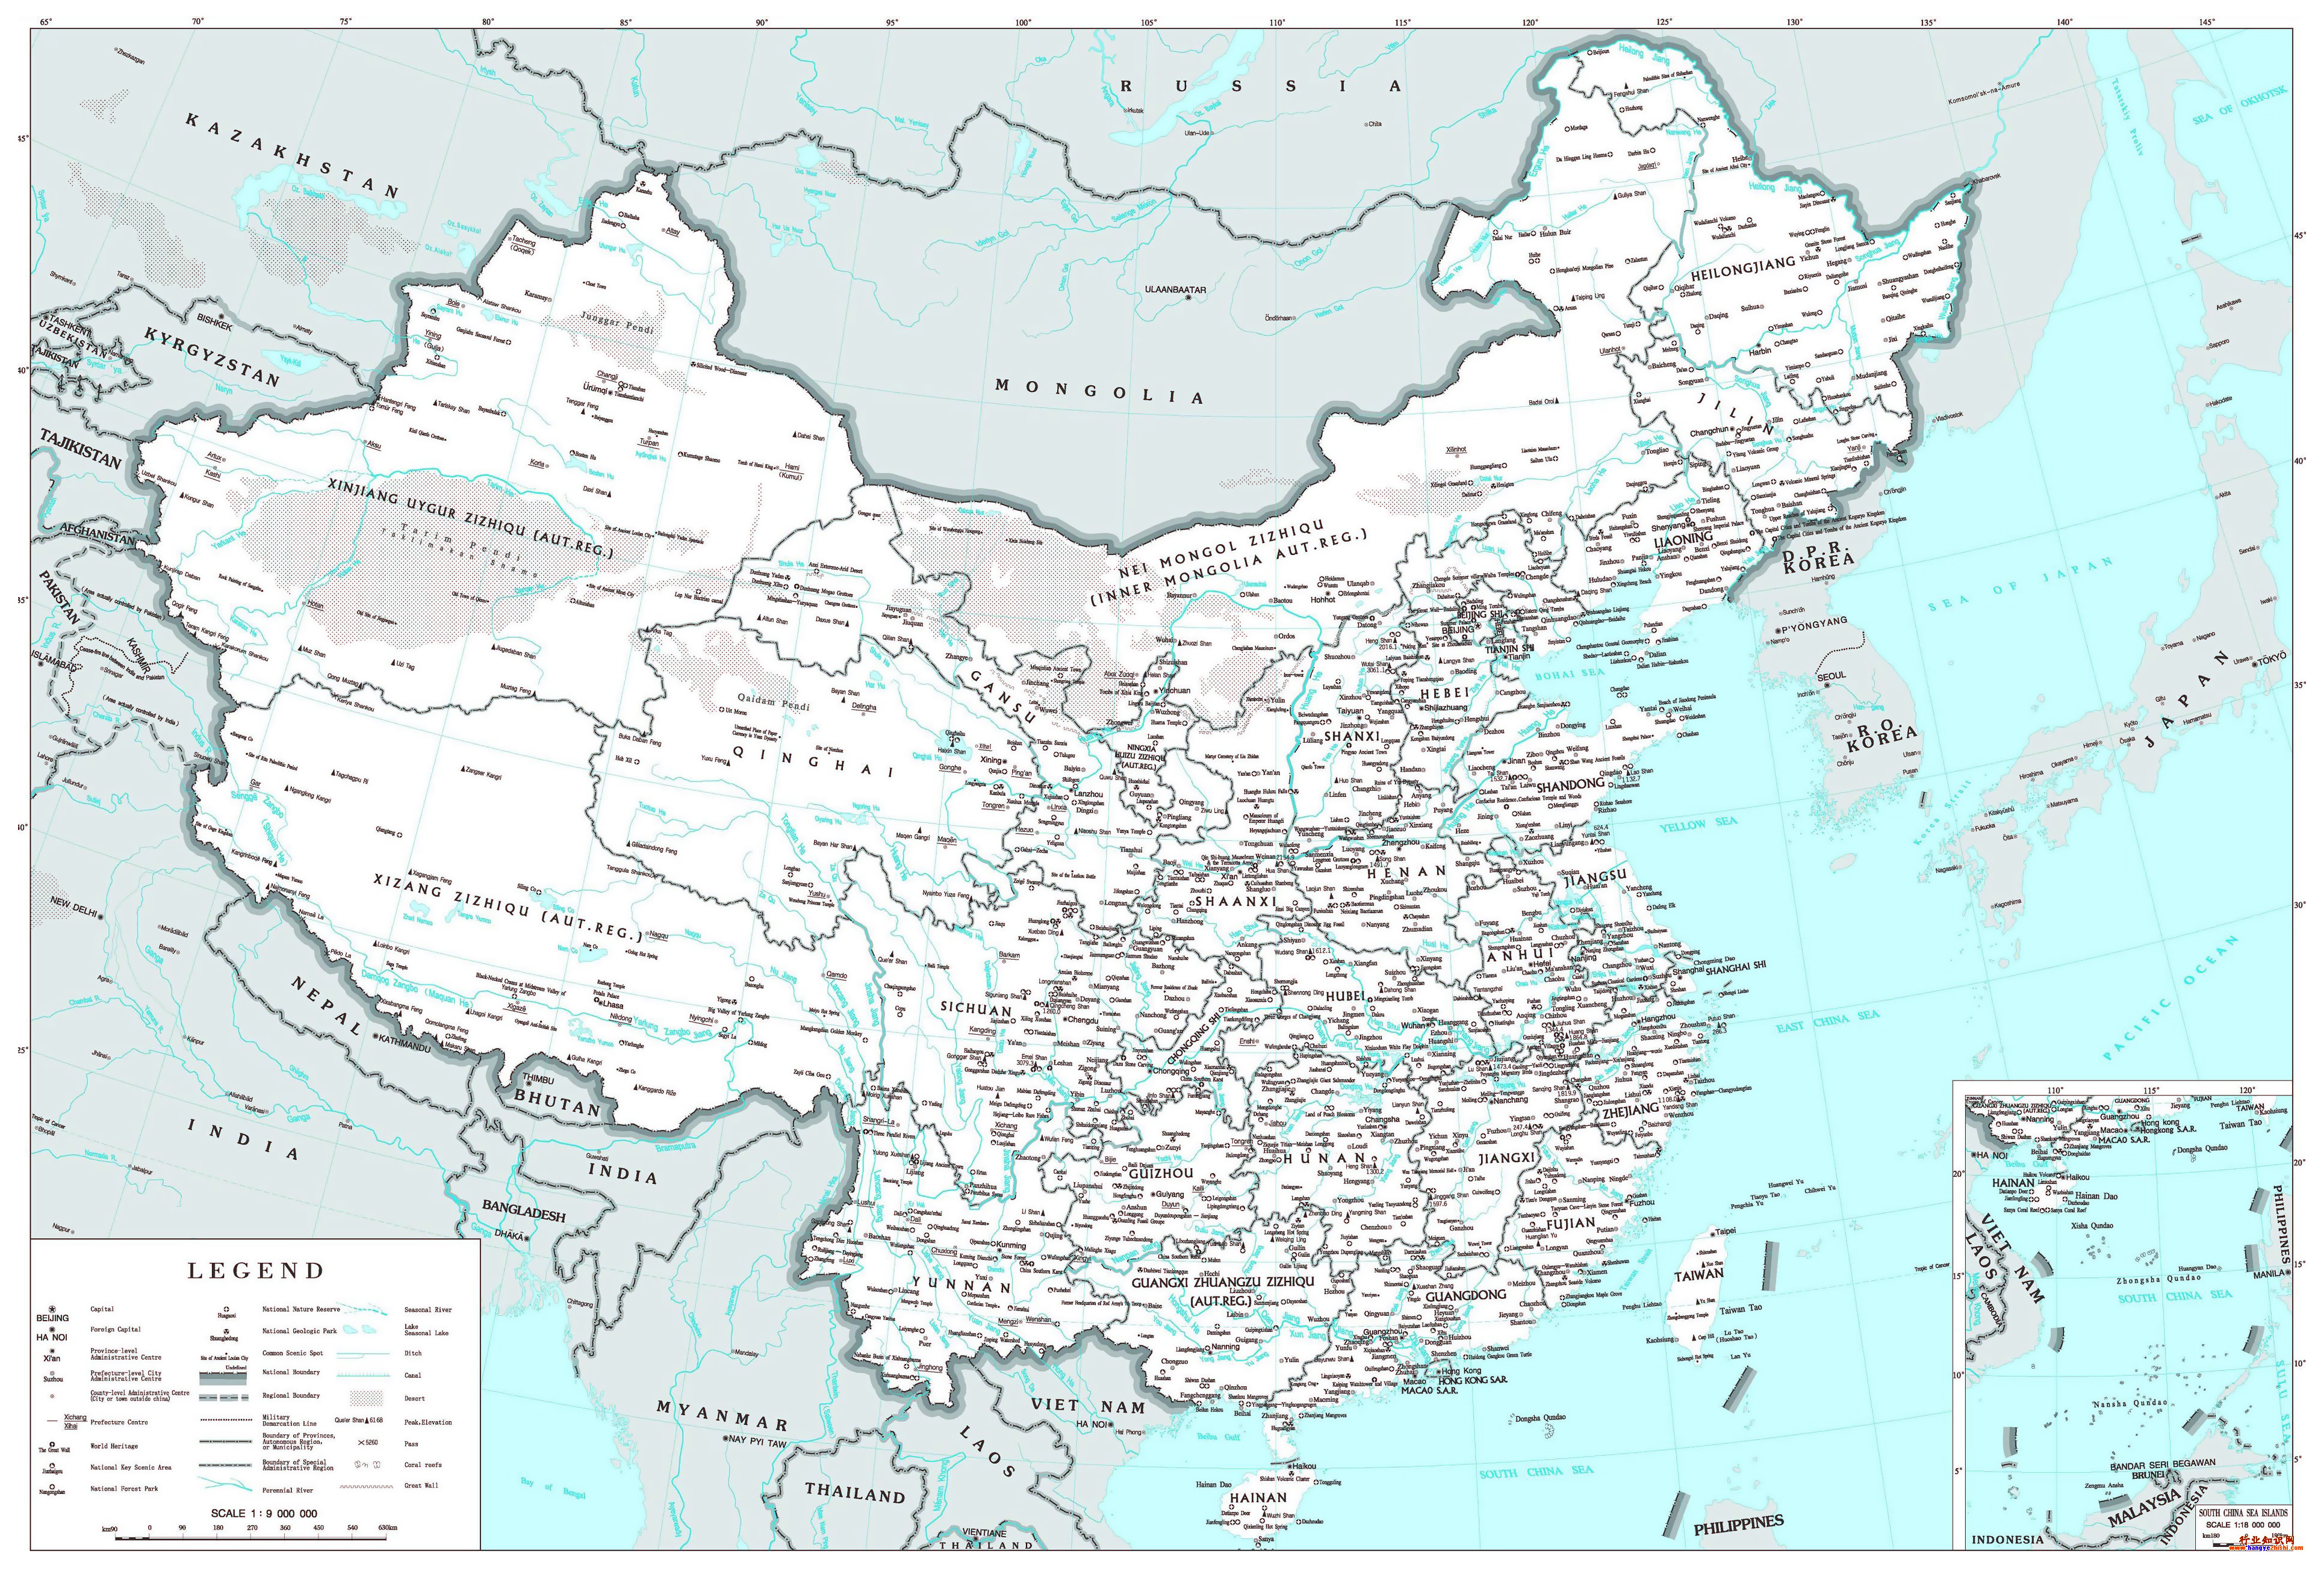 Map Of China Cities In English.Large Political And Administrative Map Of China With Cities And